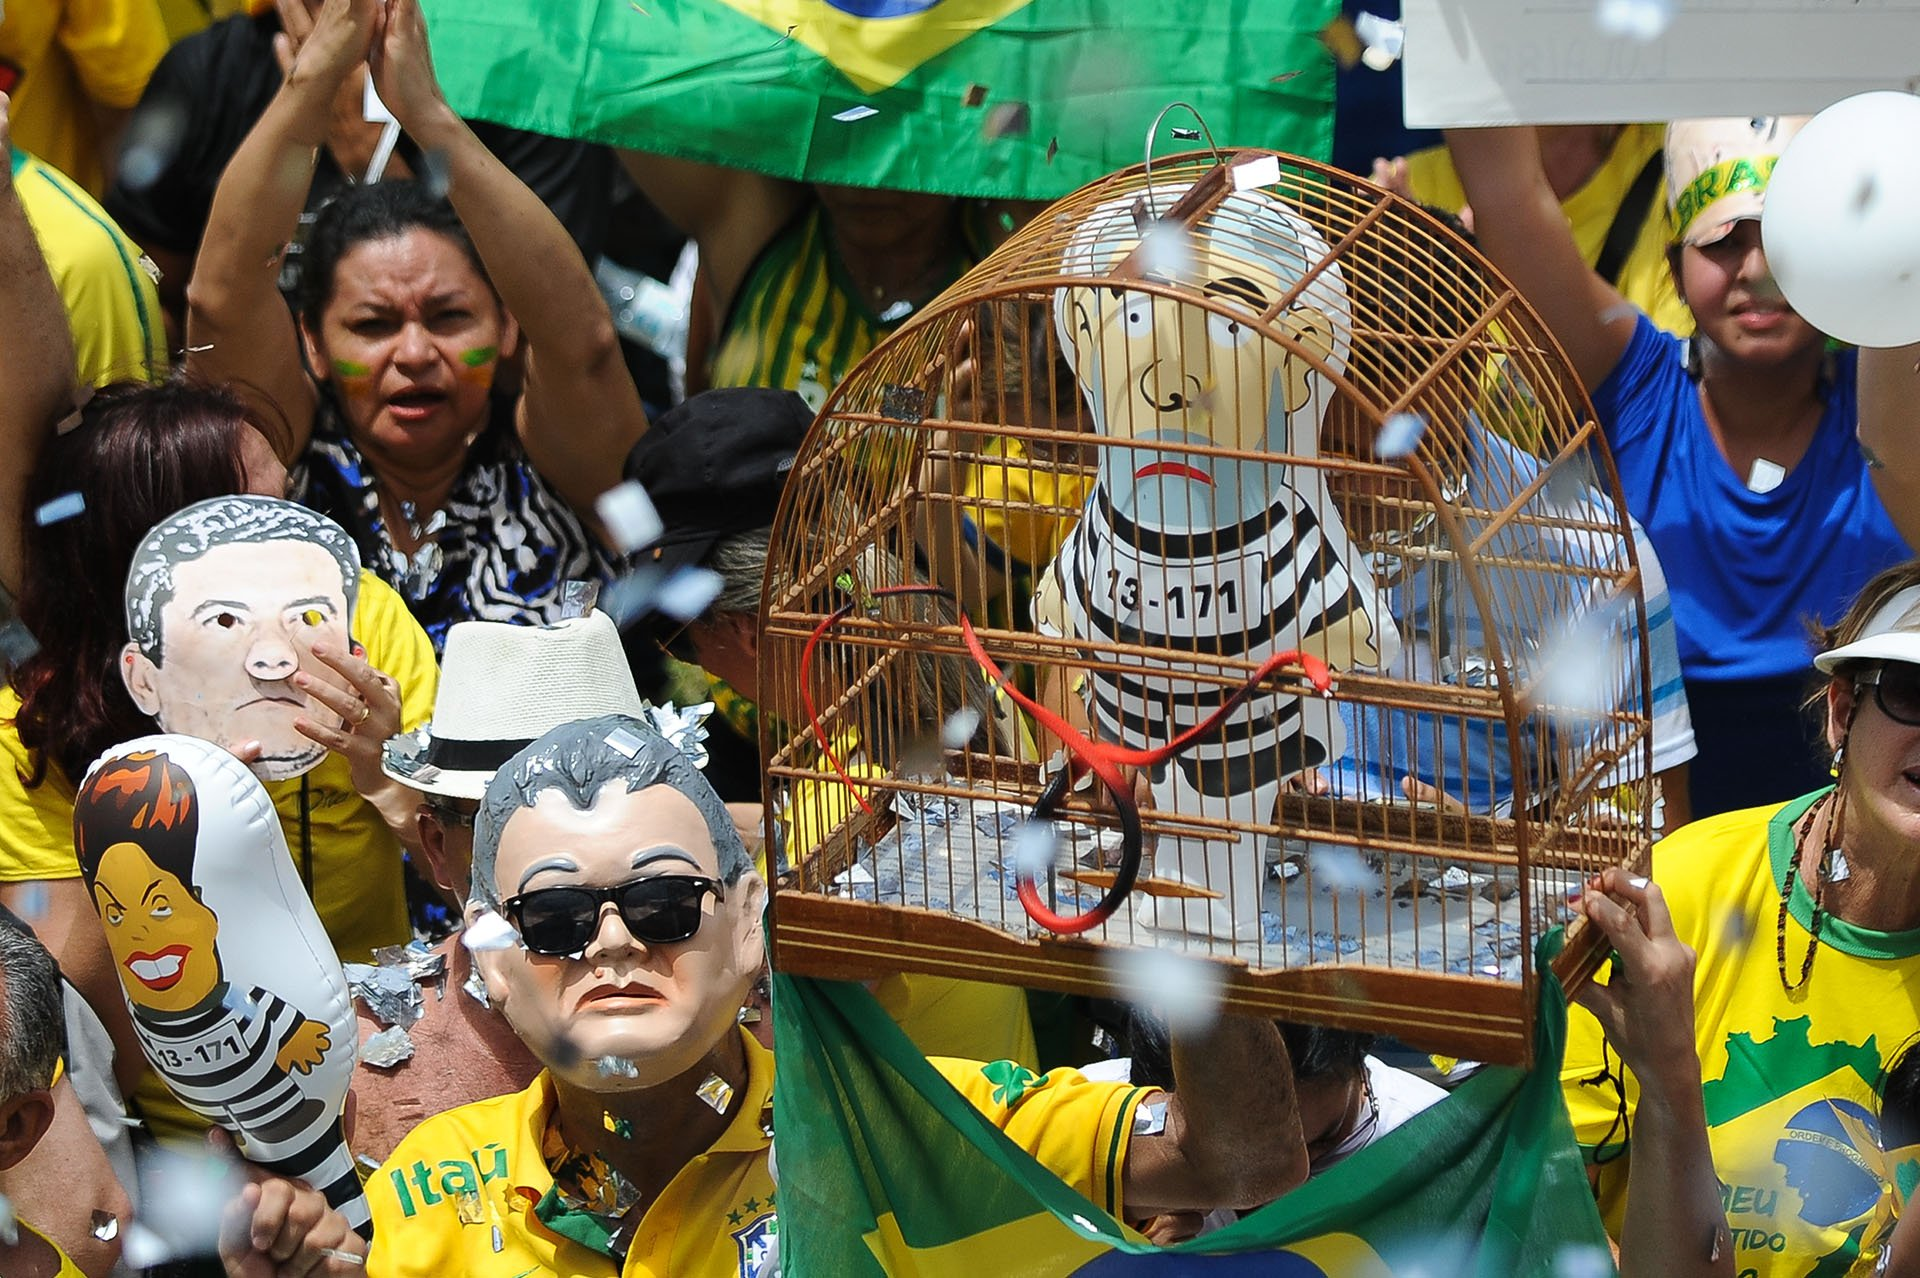 marcha brasil contra lula y dilma rousseff (14)